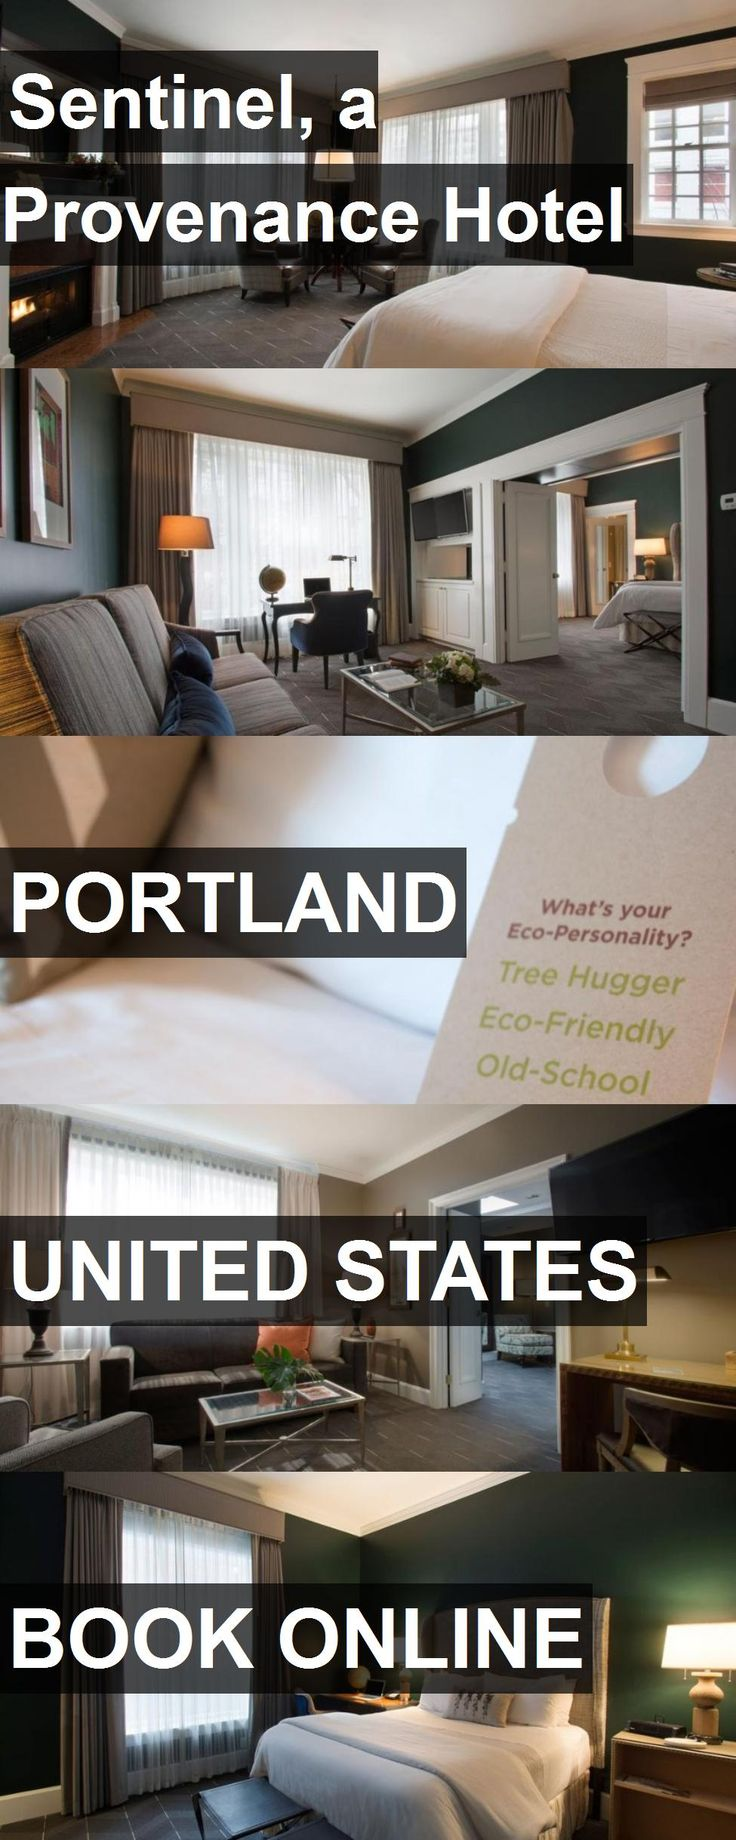 Sentinel, a Provenance Hotel in Portland, United States. For more information, photos, reviews and best prices please follow the link. #UnitedStates #Portland #travel #vacation #hotel